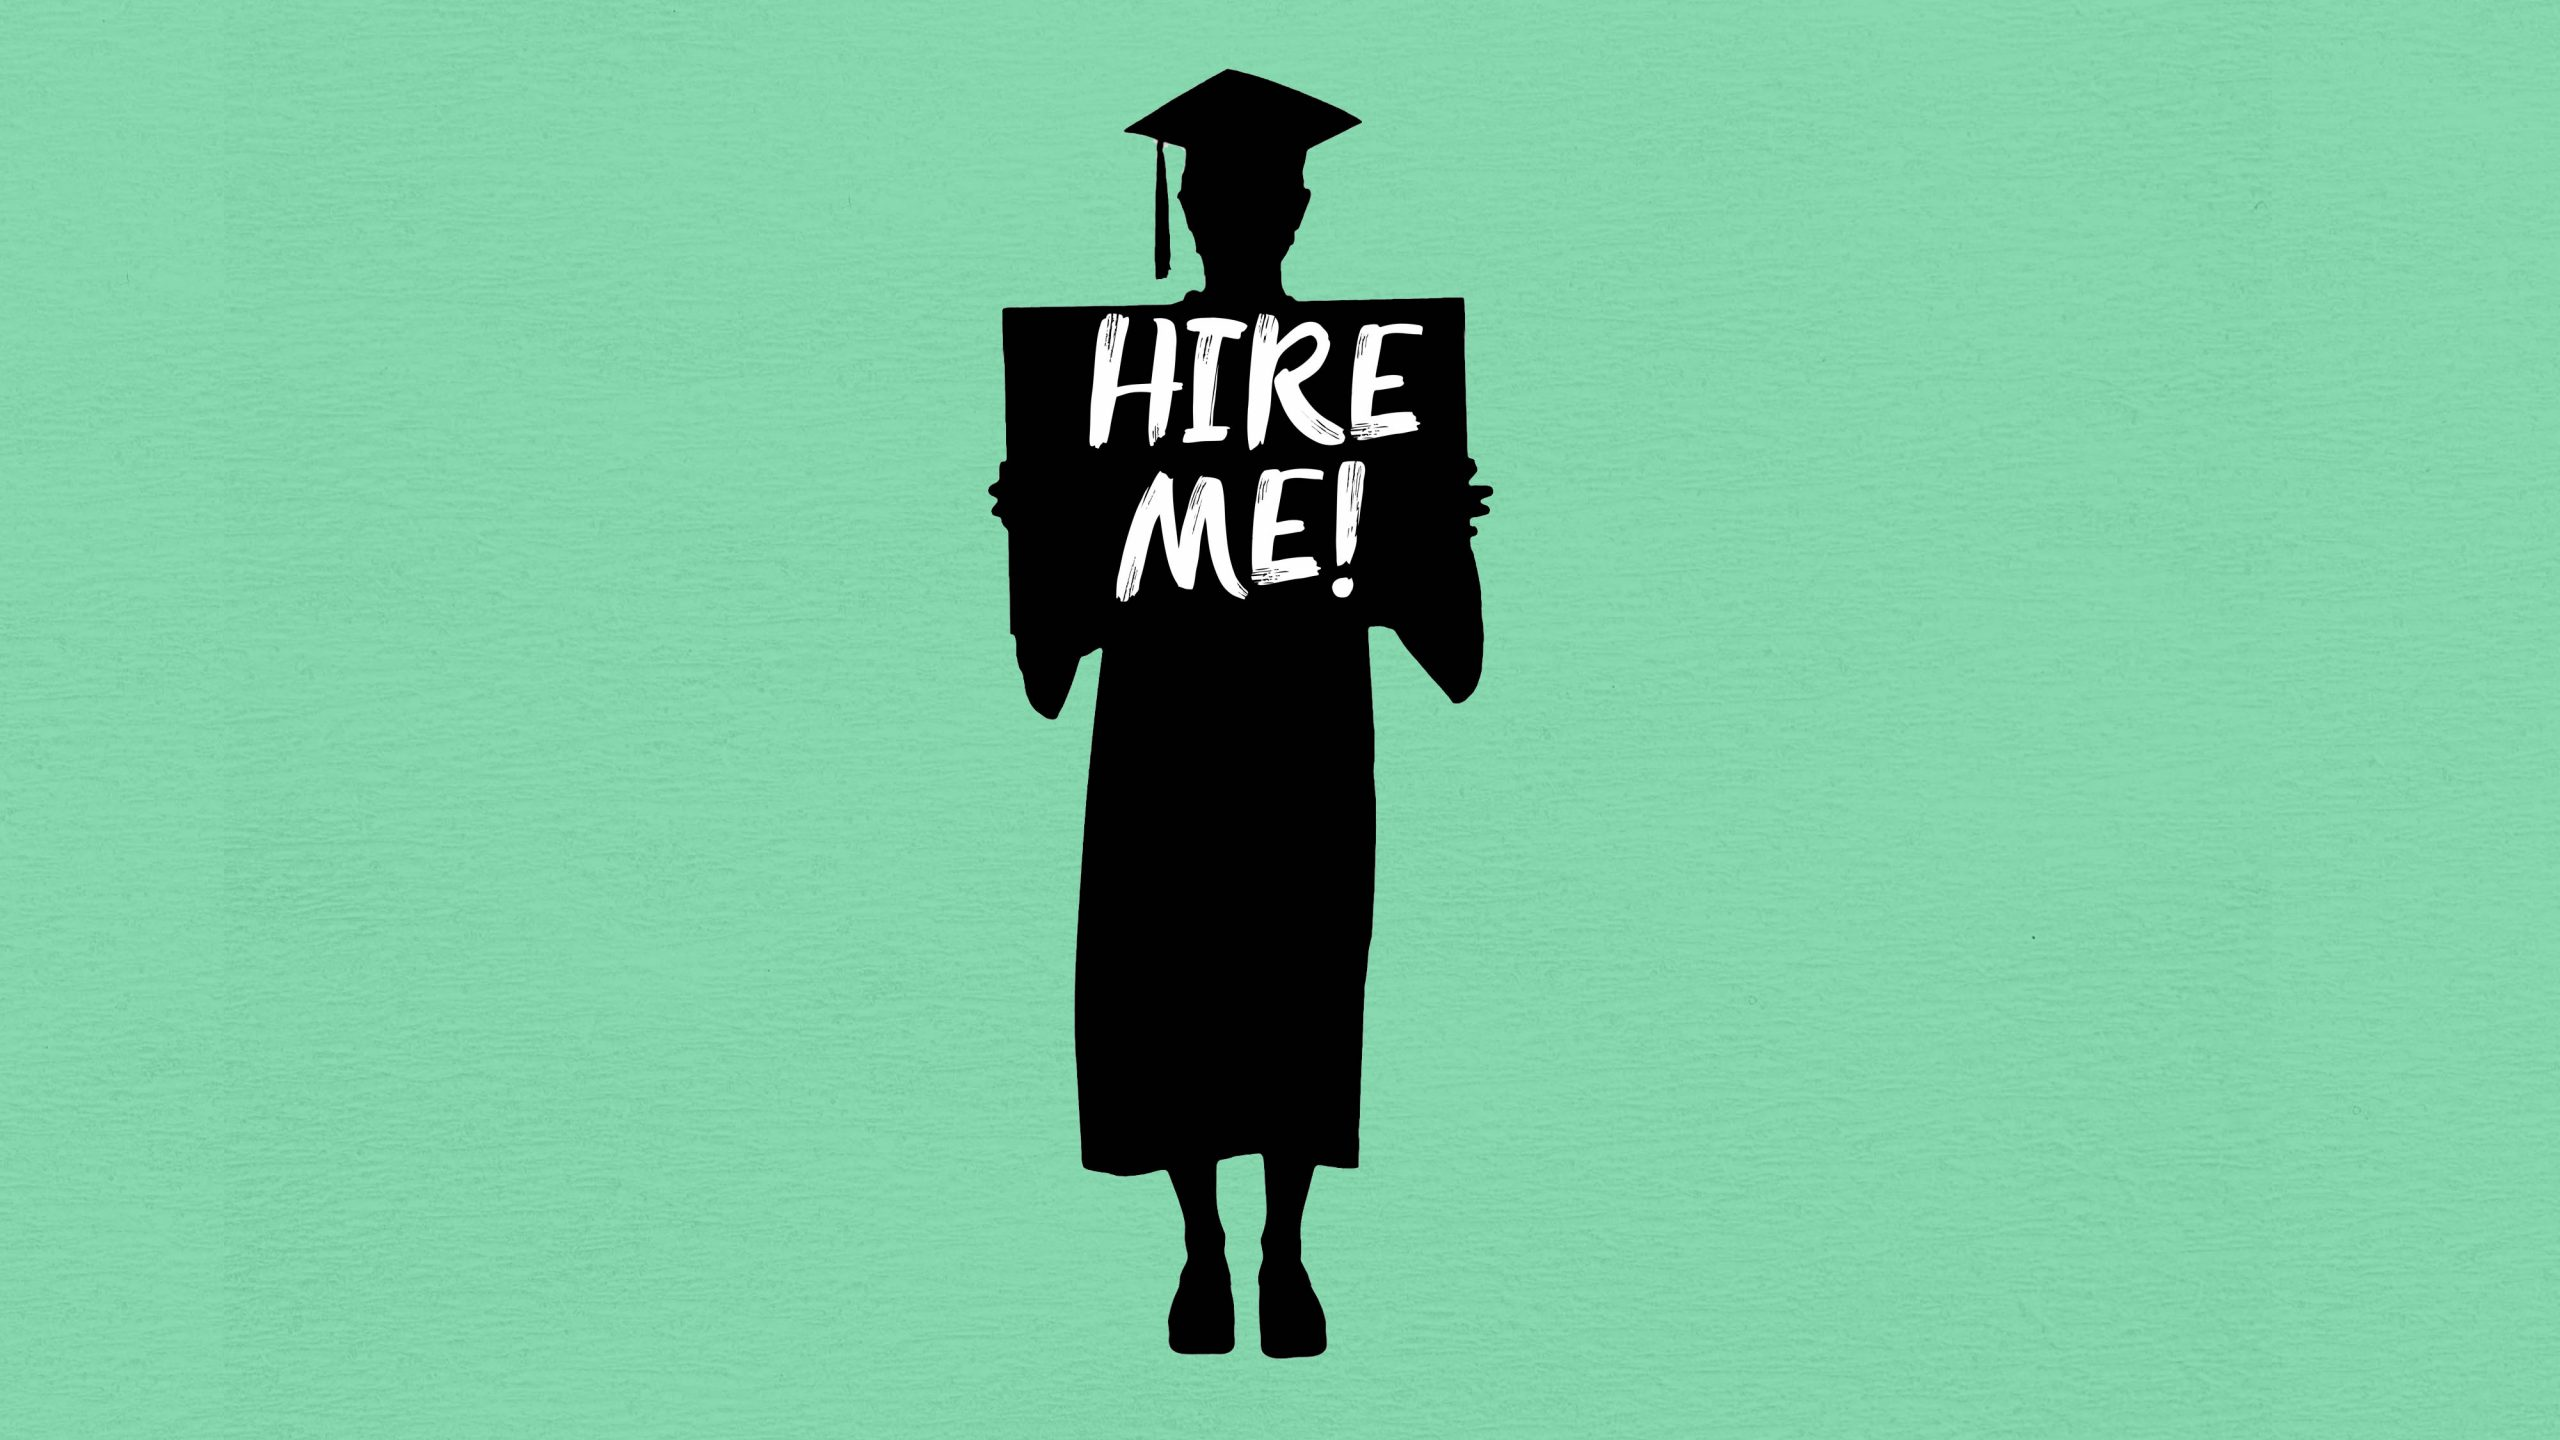 Despite the worst-ever worker shortages, college grads struggle to find jobs as competition for work intensifies